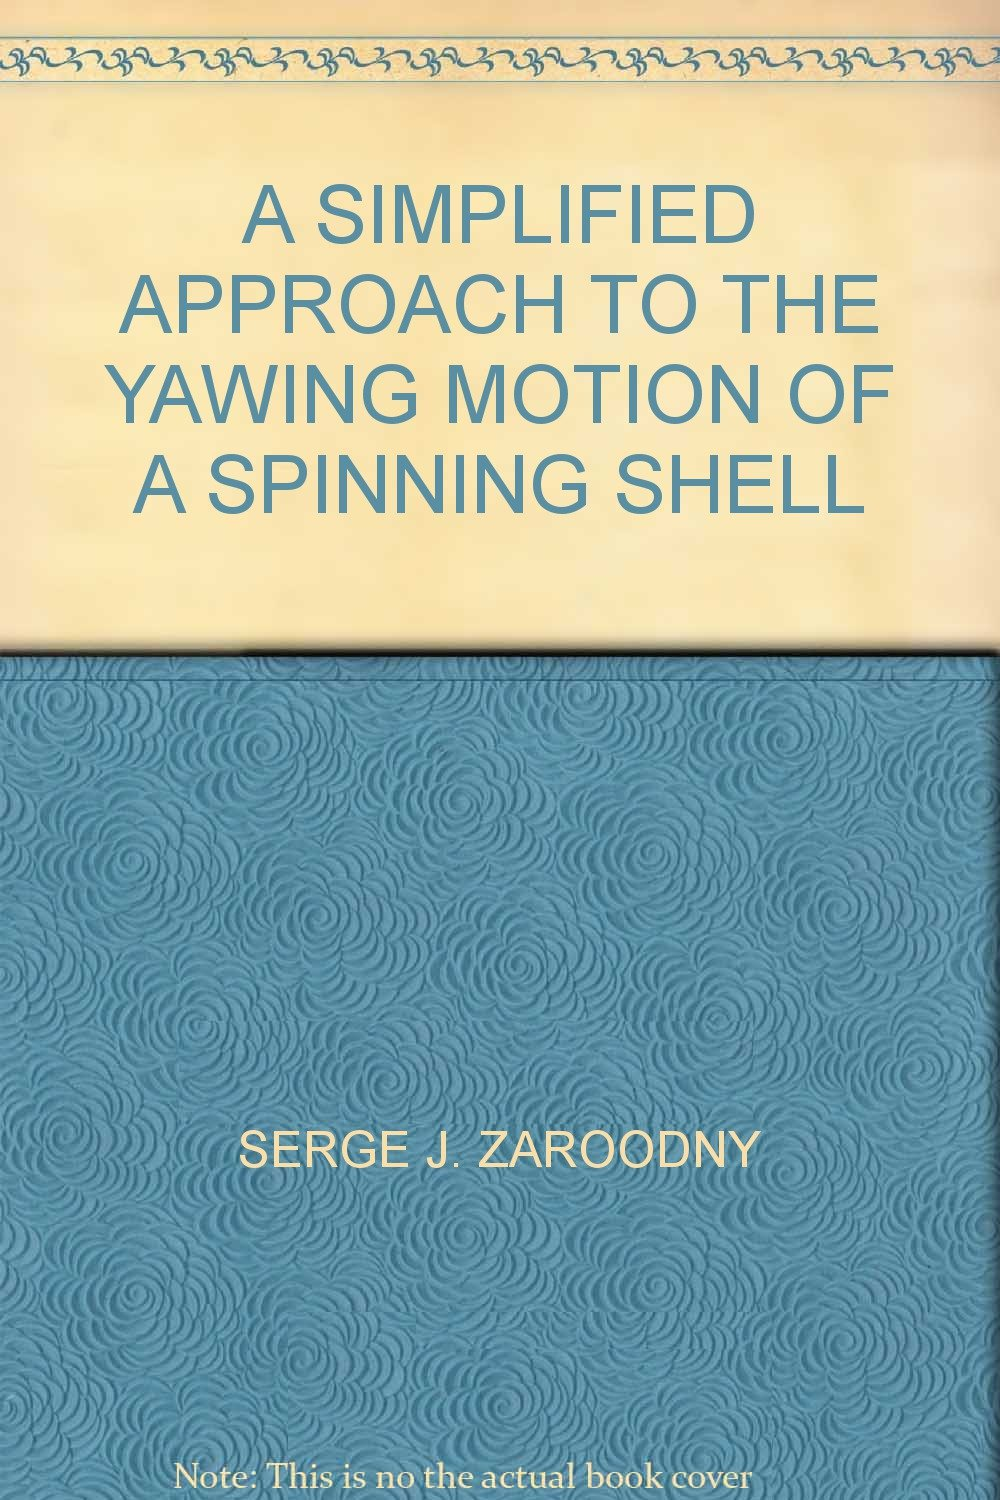 A SIMPLIFIED APPROACH TO THE YAWING MOTION OF A SPINNING SHELL